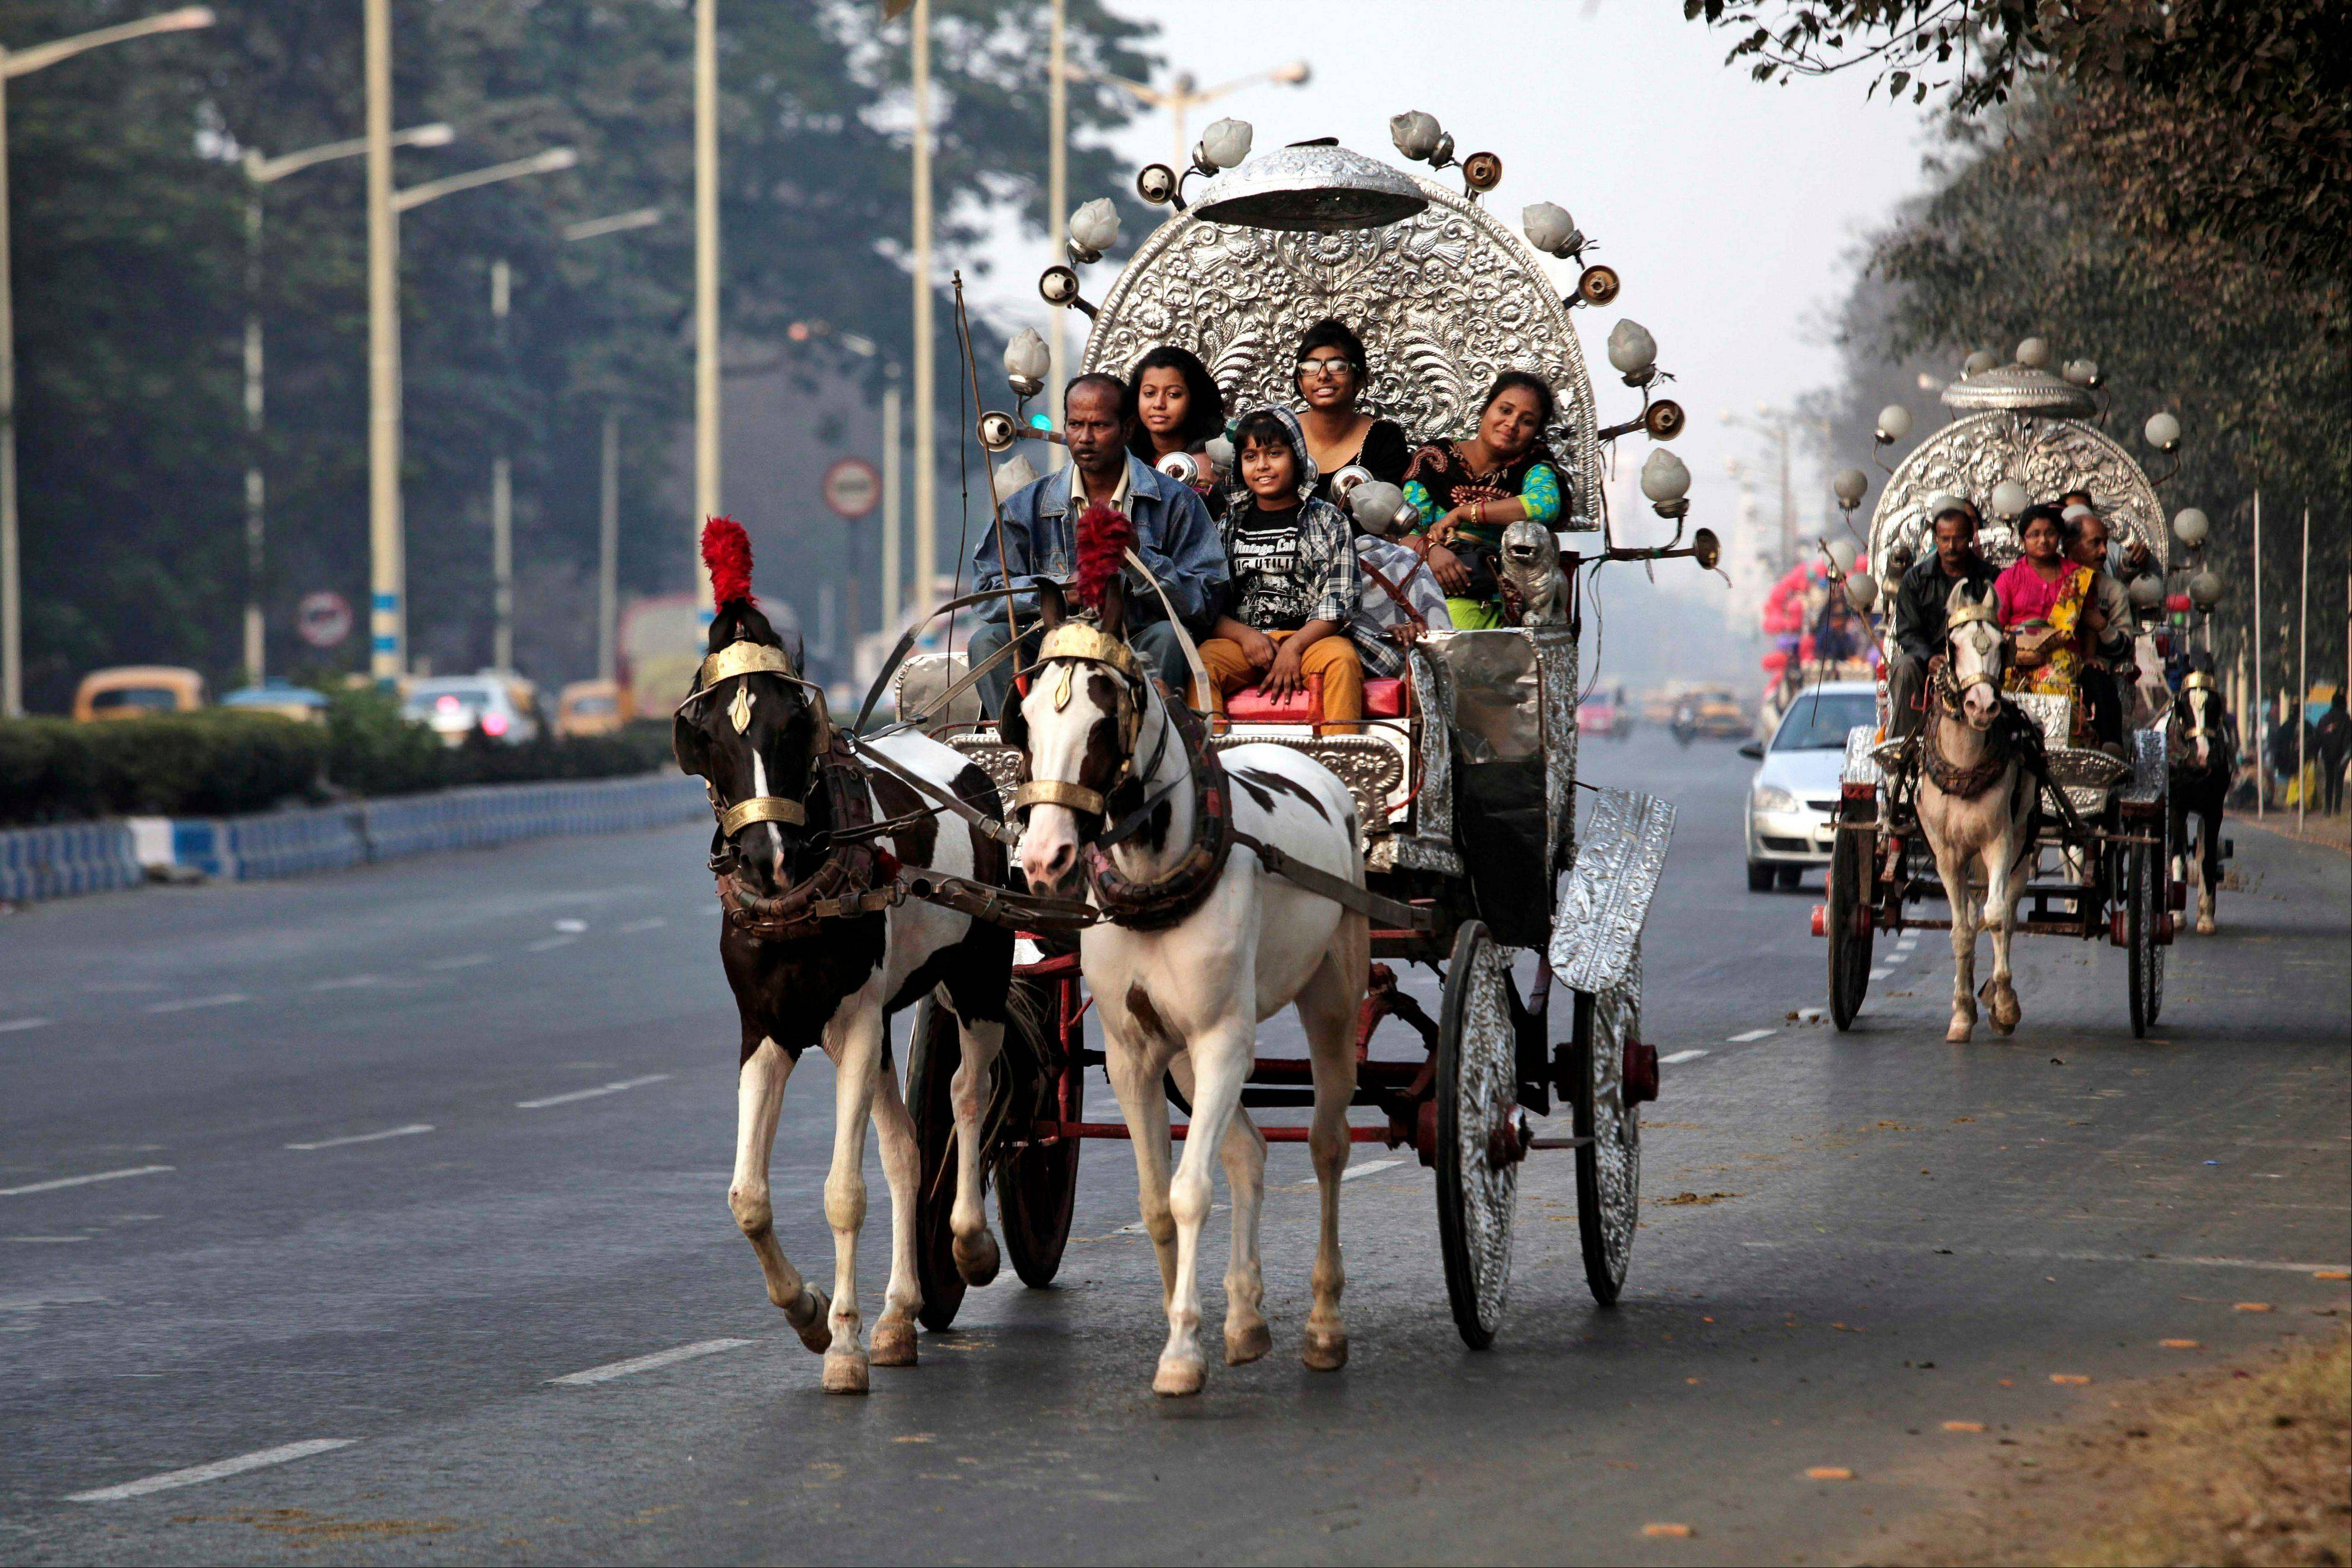 Indian families enjoy a ride on decorated horse driven carts on a street on the first day of the New Year, in Kolkata, India, Wednesday, Jan. 1, 2014.